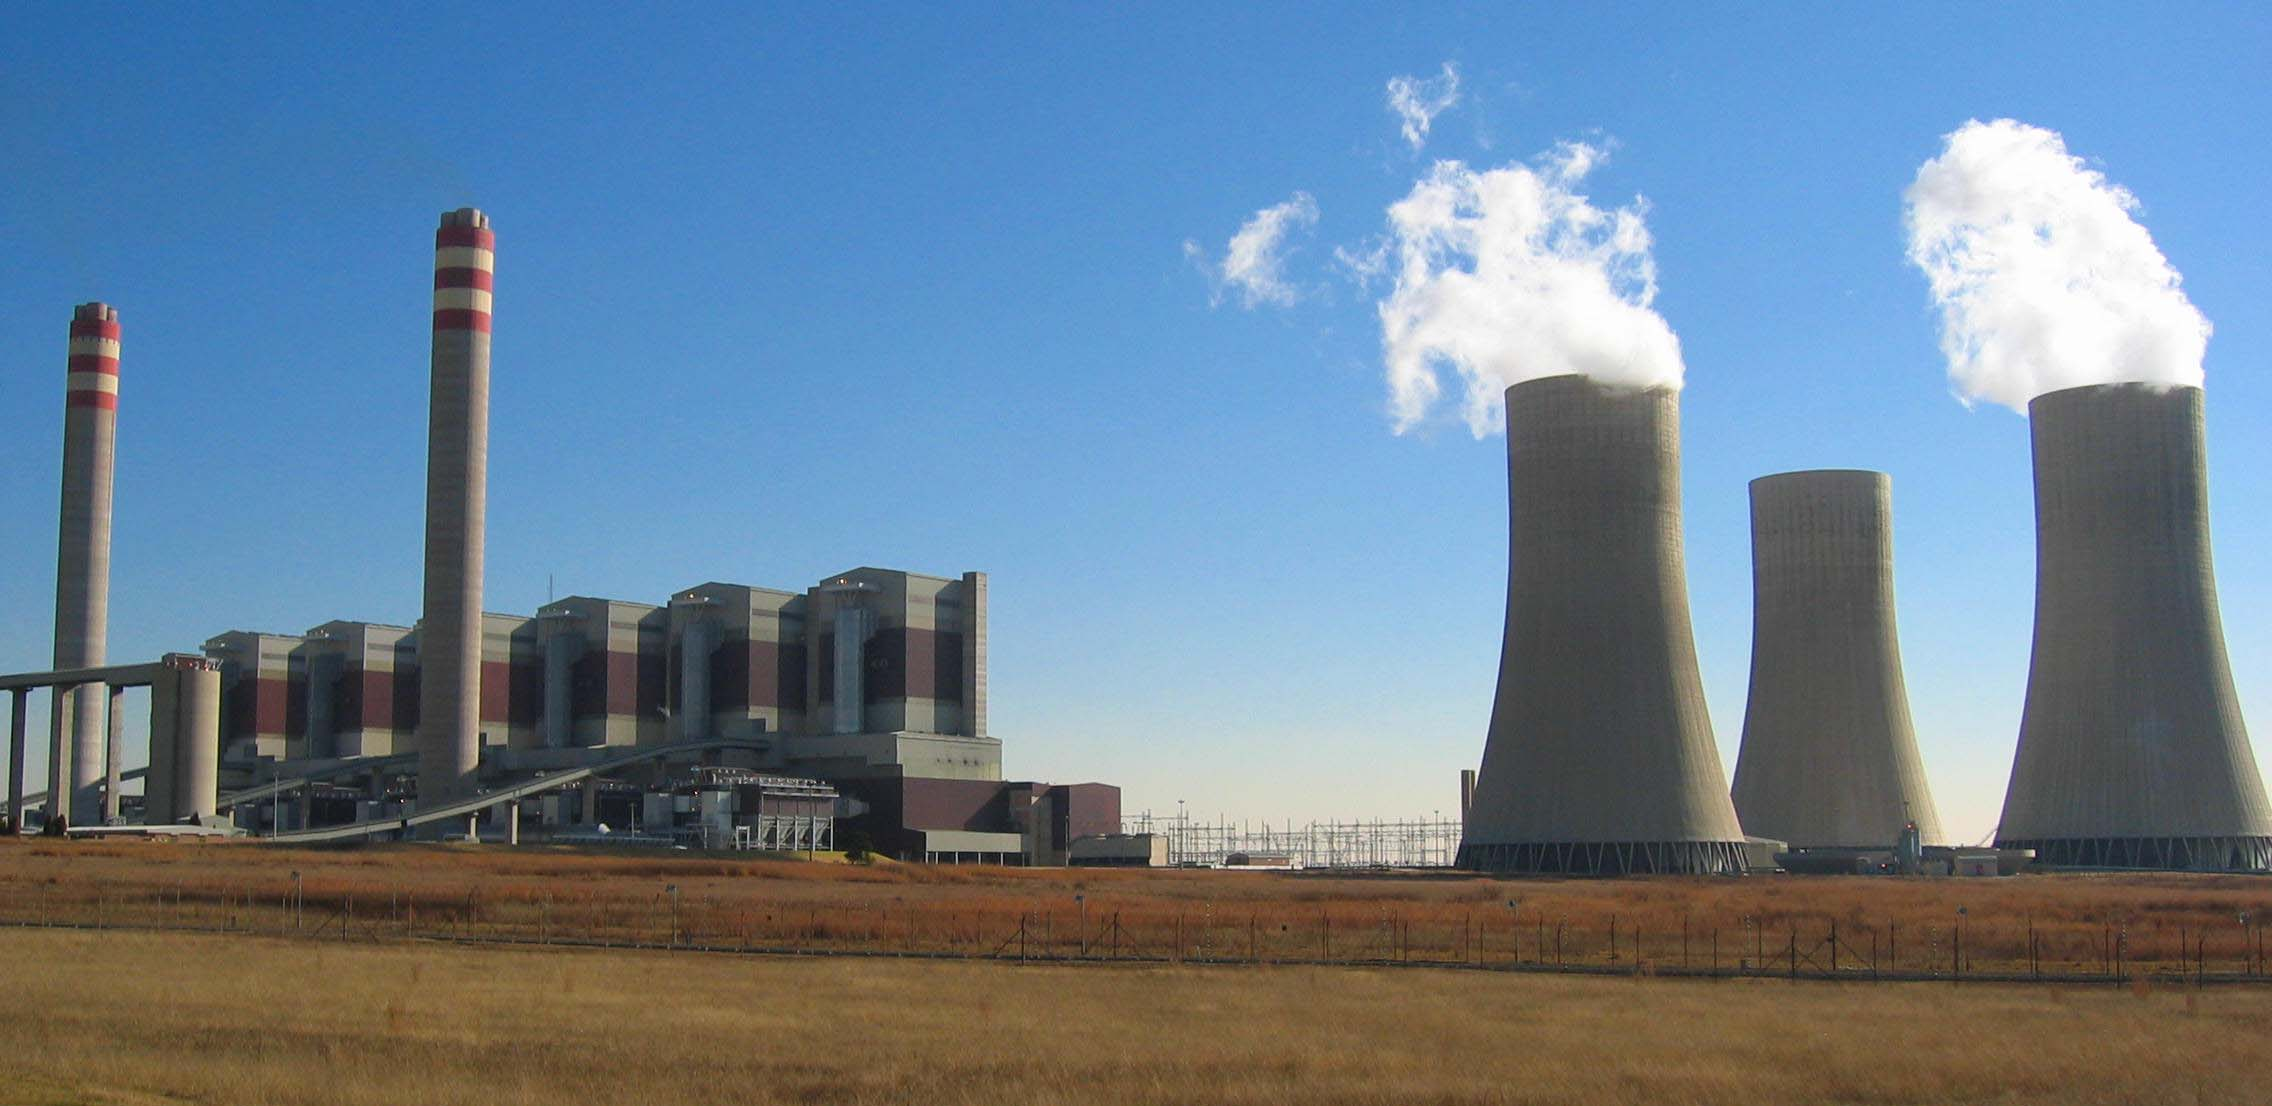 header_coal_fired_power_plants.jpg